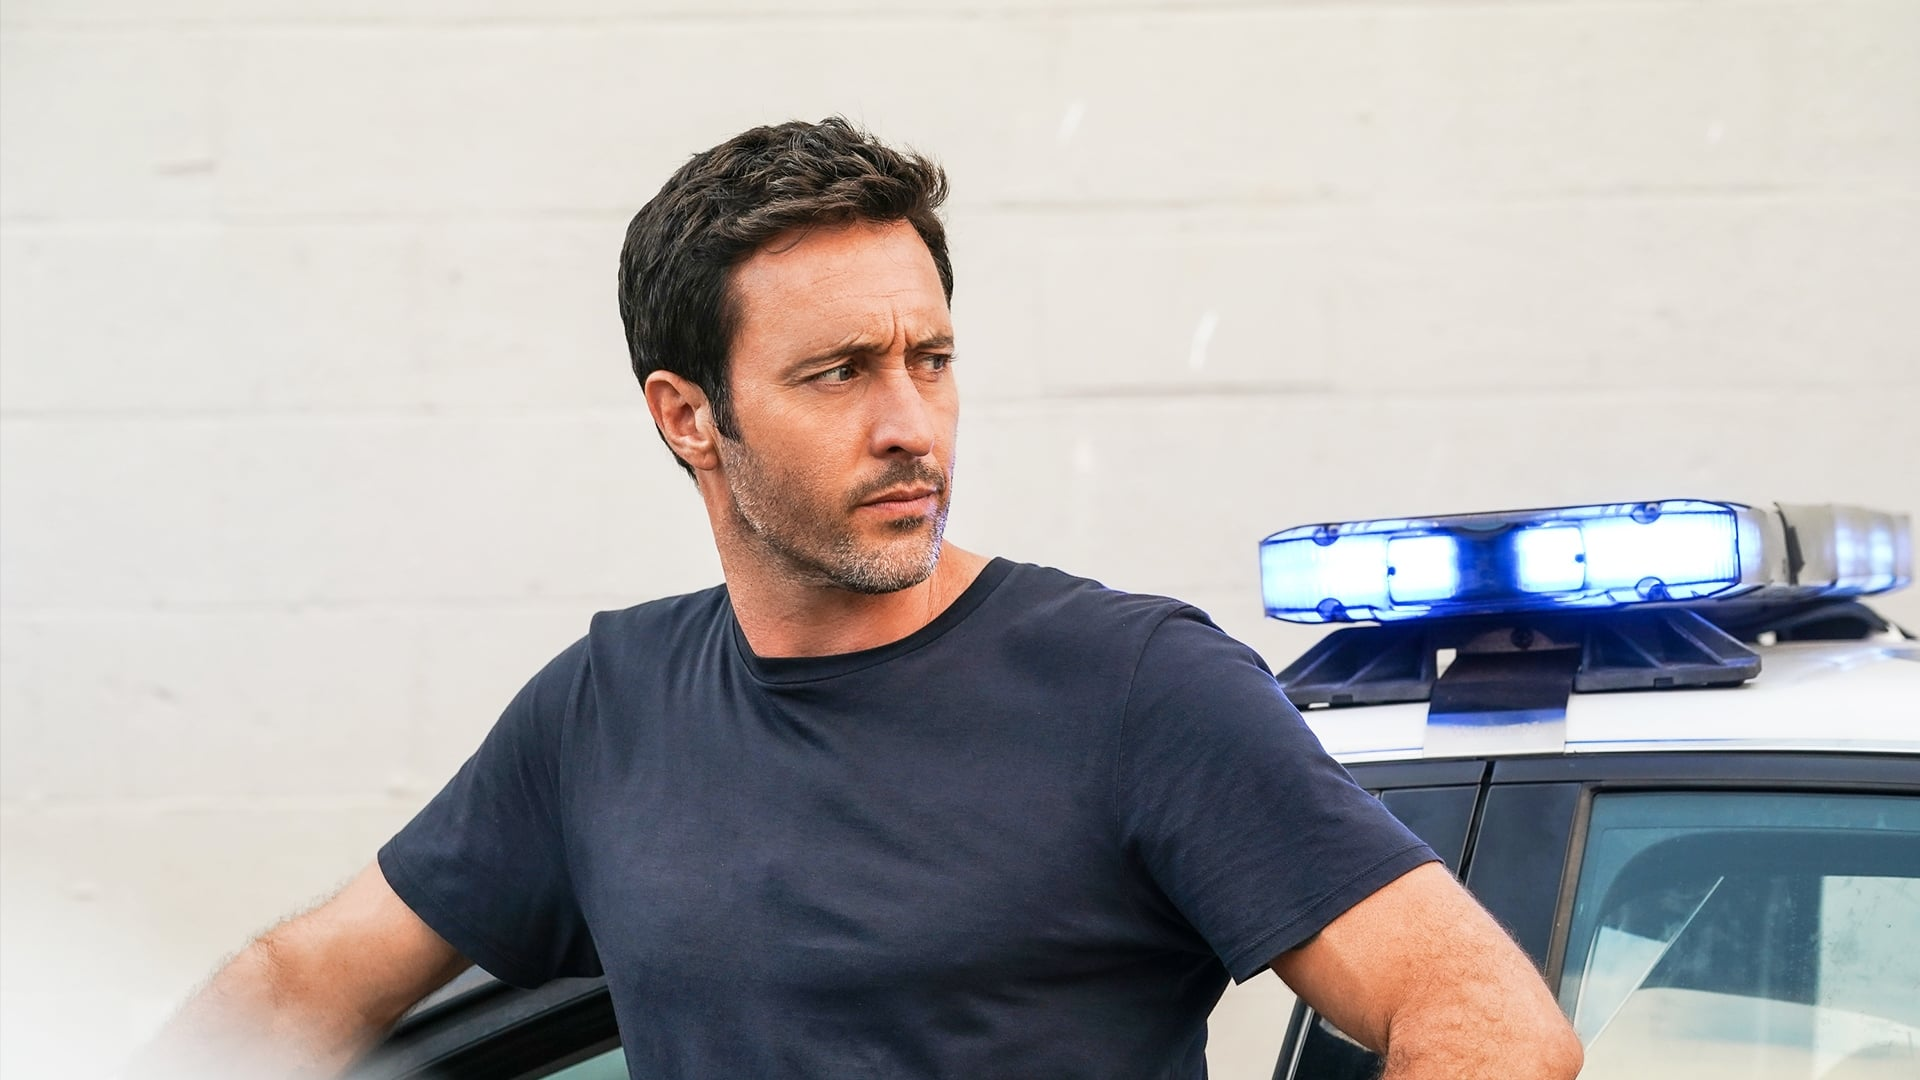 Hawaii Five-0 - Season 10 Episode 6 : A'ohe Pau Ka 'ike I Ka Halau Ho'okahi (All knowledge is not learned in just one school)